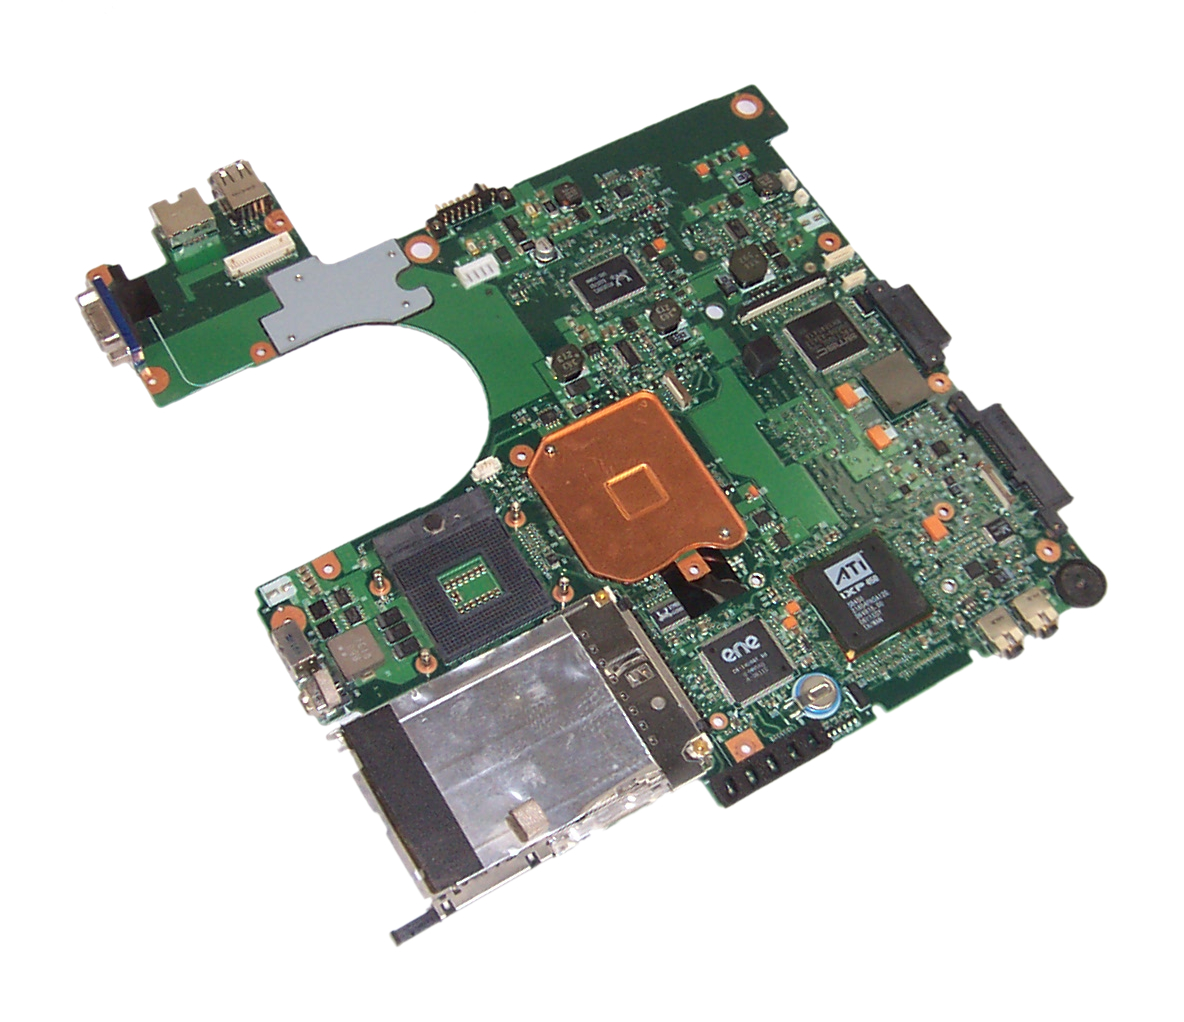 Toshiba V000068100 Satellite Pro A100 Laptop Motherboard